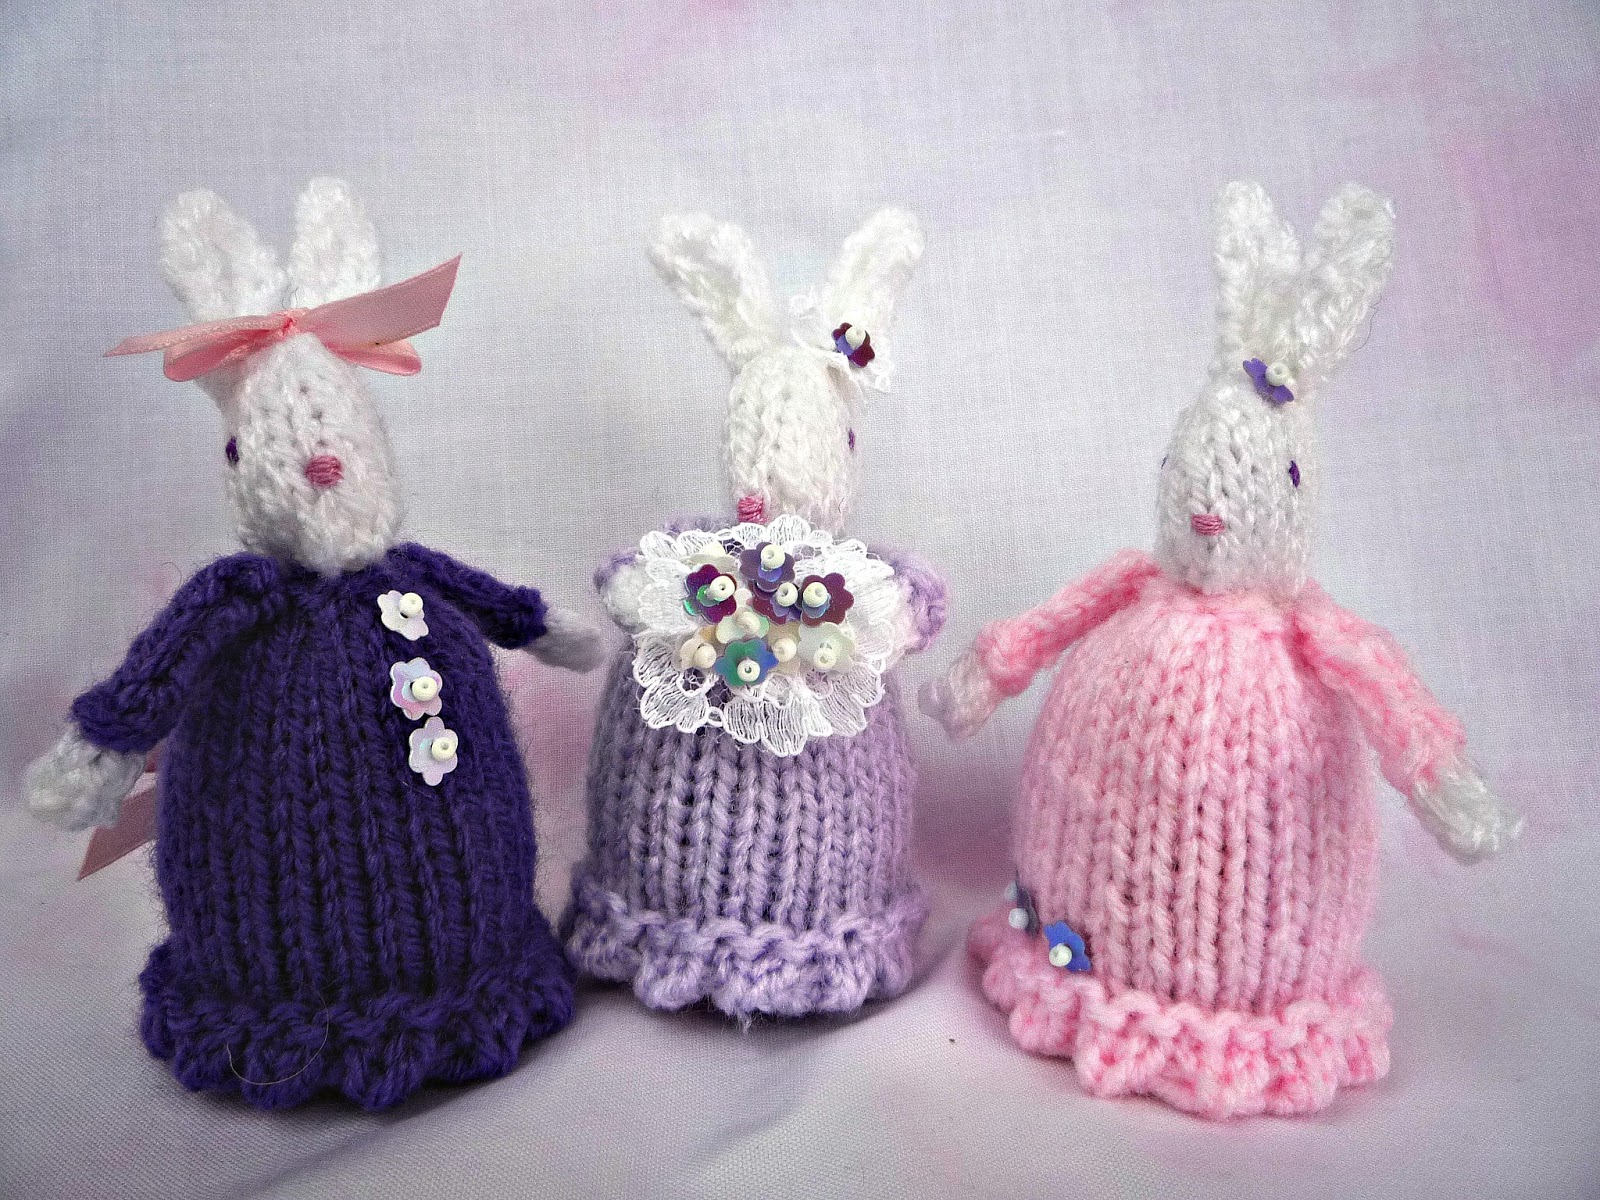 the Creations of Crazy Dazy: easter pattern